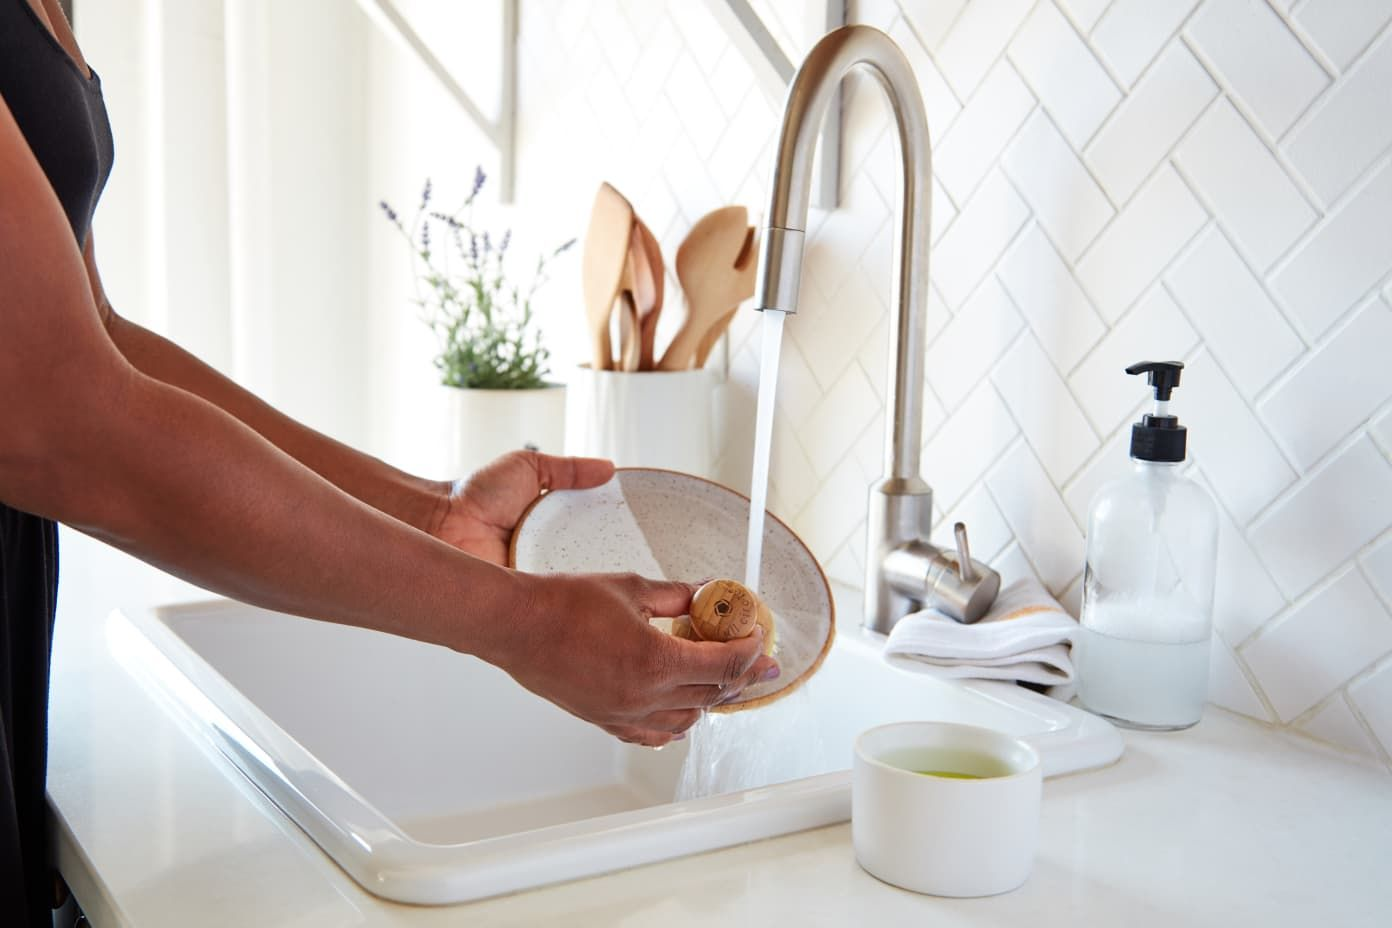 5 New Habits to Keep Your Kitchen MessFree Since You're